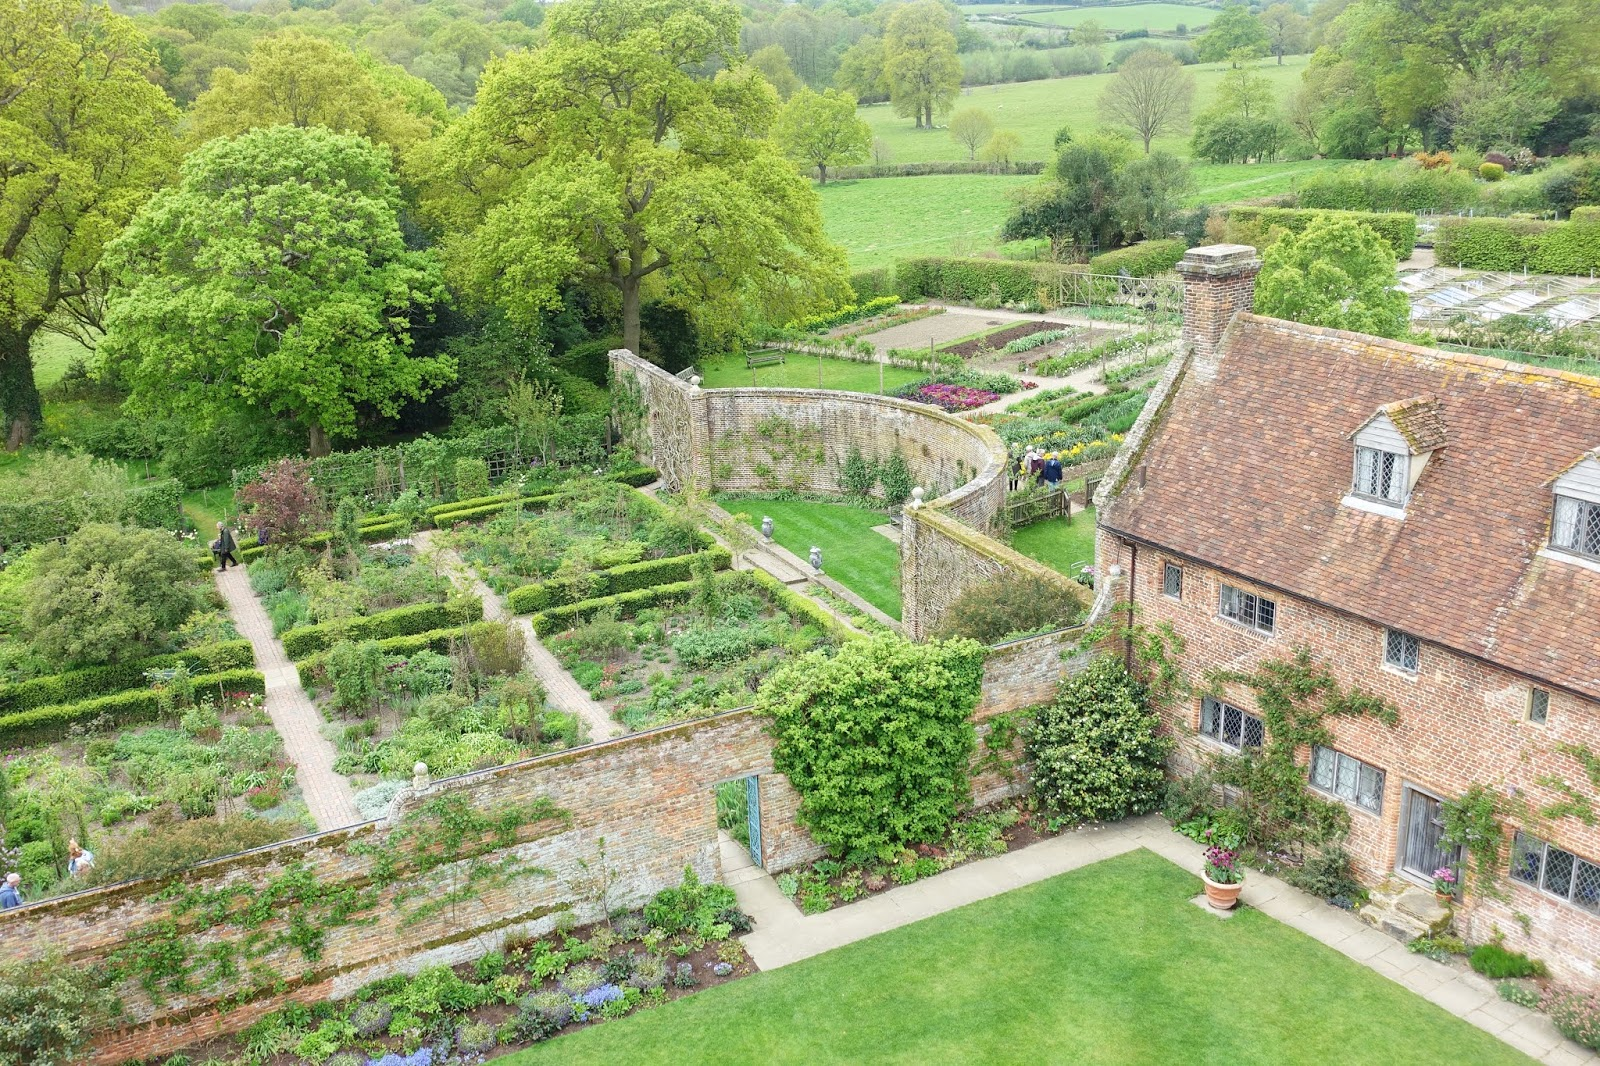 Looking down at the gardens from the tower at Sissinghurst in springtime